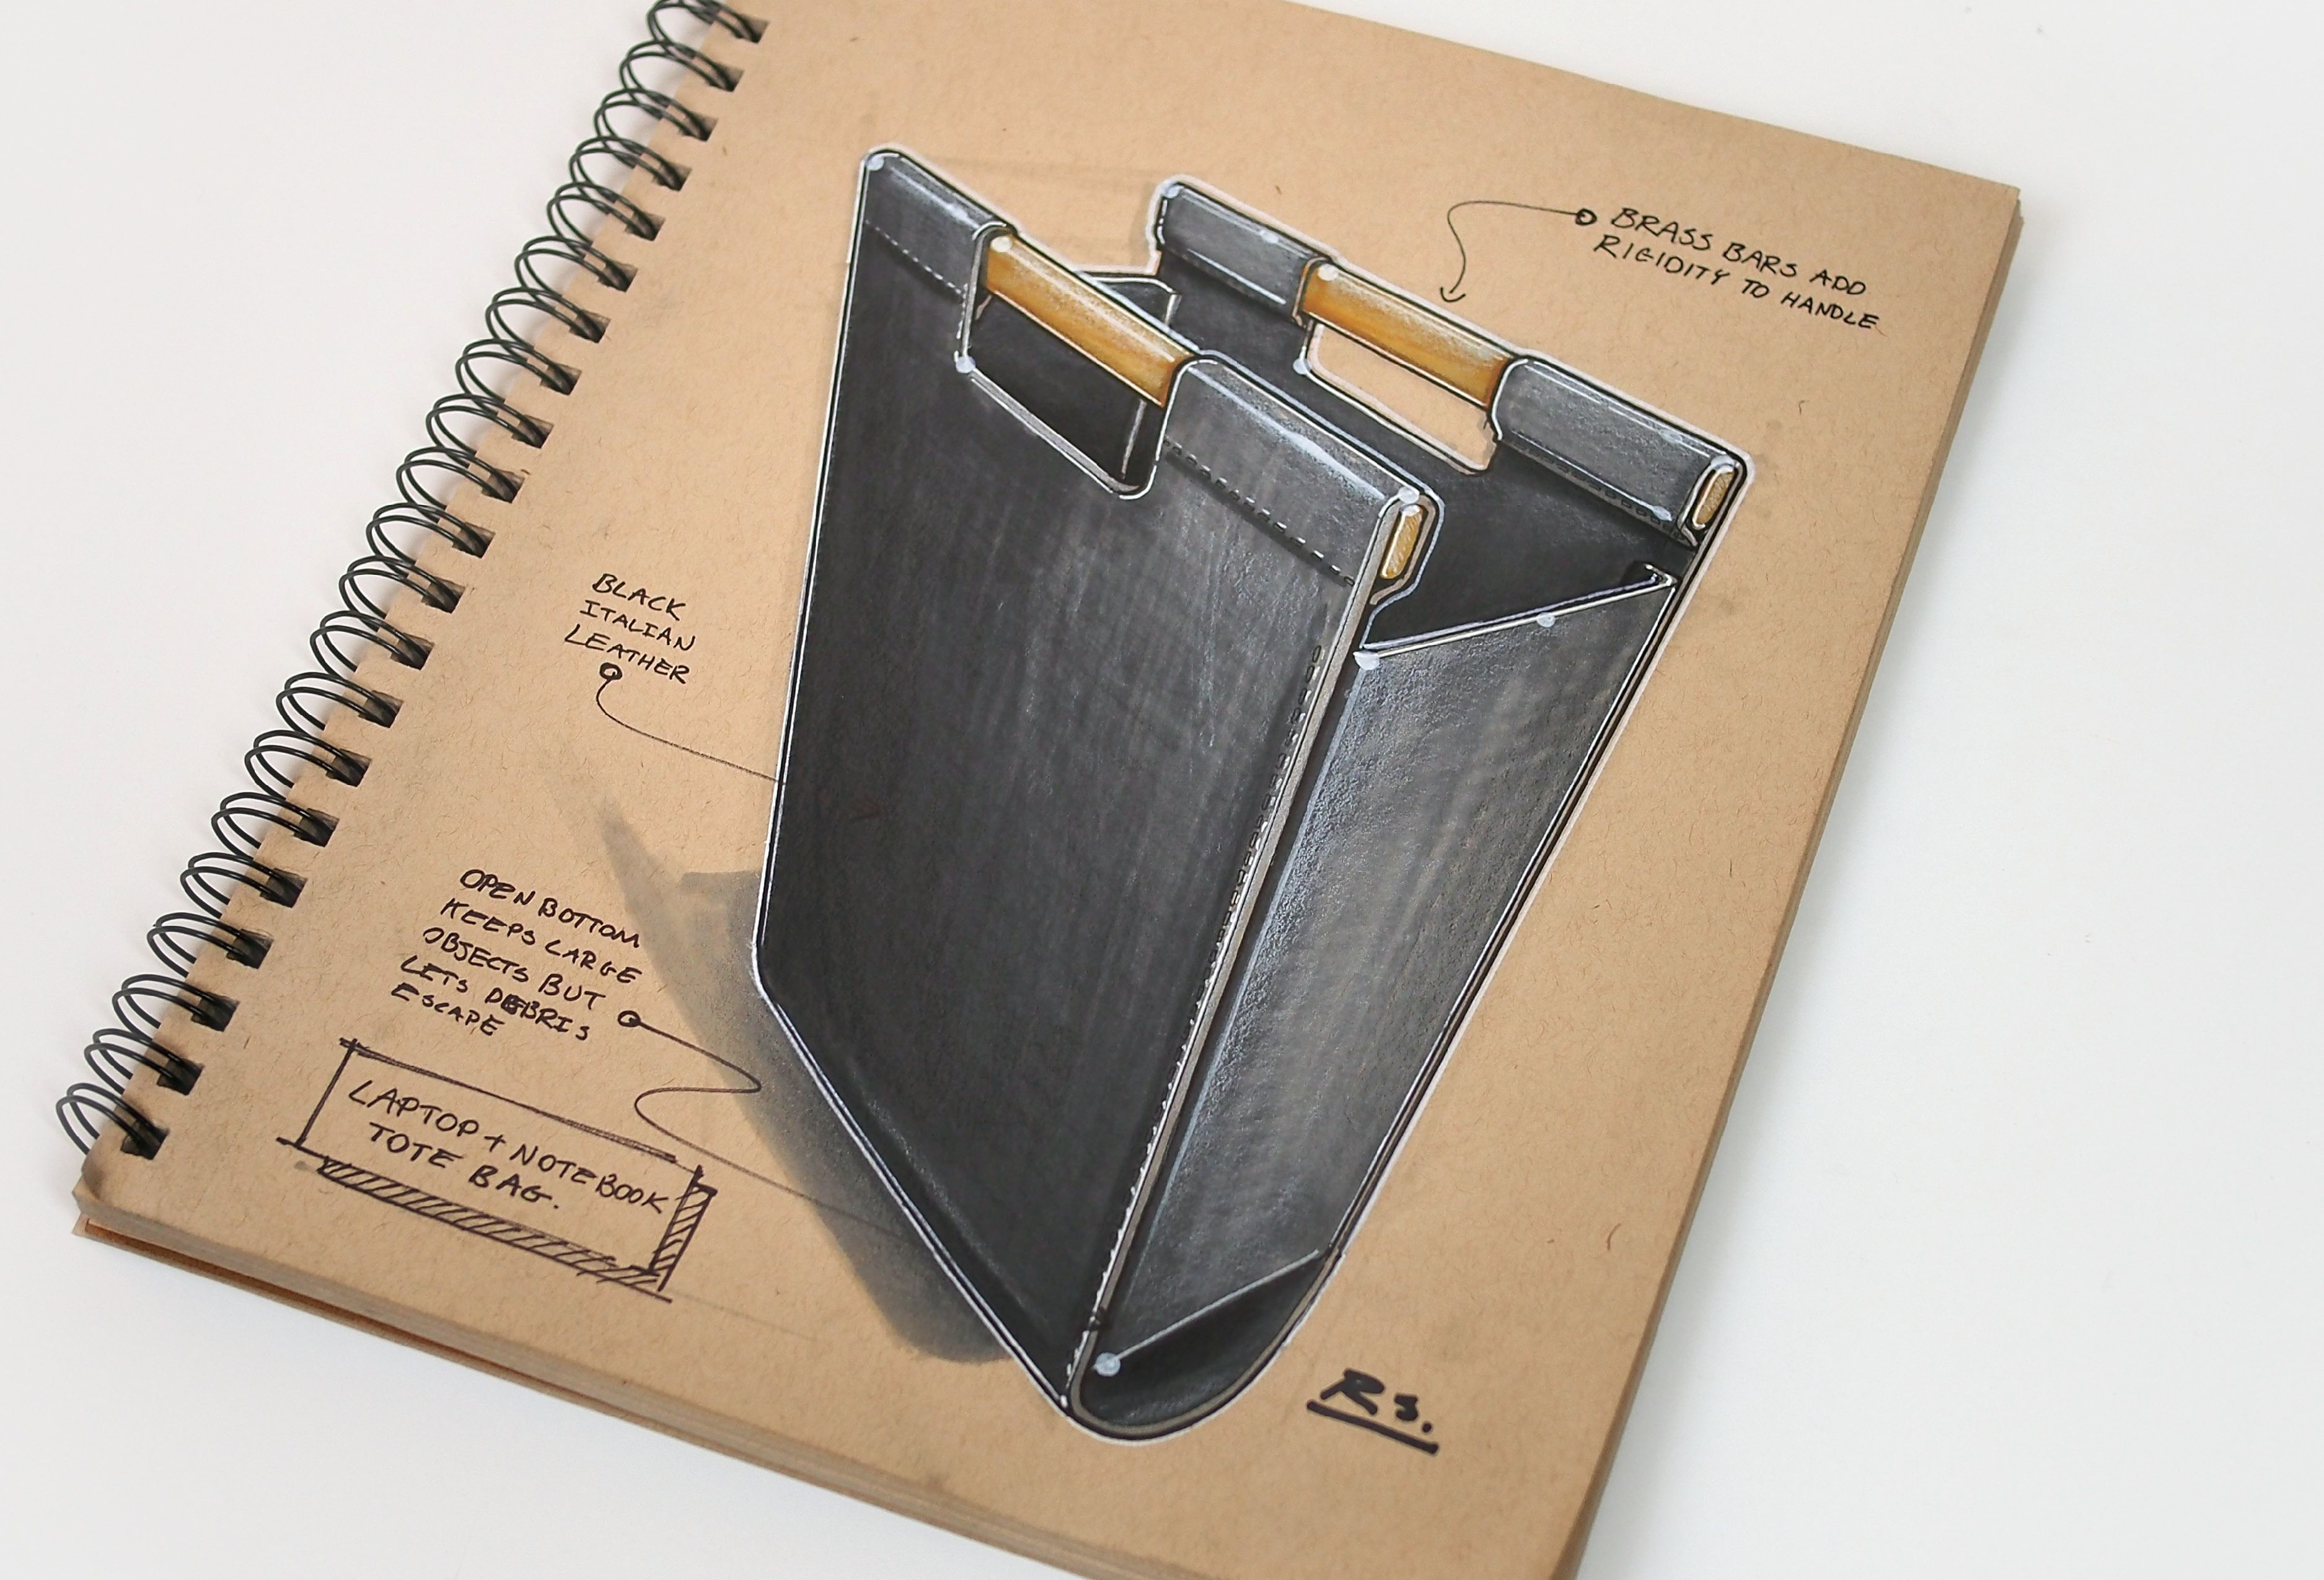 Enjoy these industrial design tips from Reid Schlegel, a Virginia Tech ID Alumni and NYC-based industrial designer for Frog Design. With his fresh sketching style, you'll see how he sketches a concept and renders it with Copic markers.